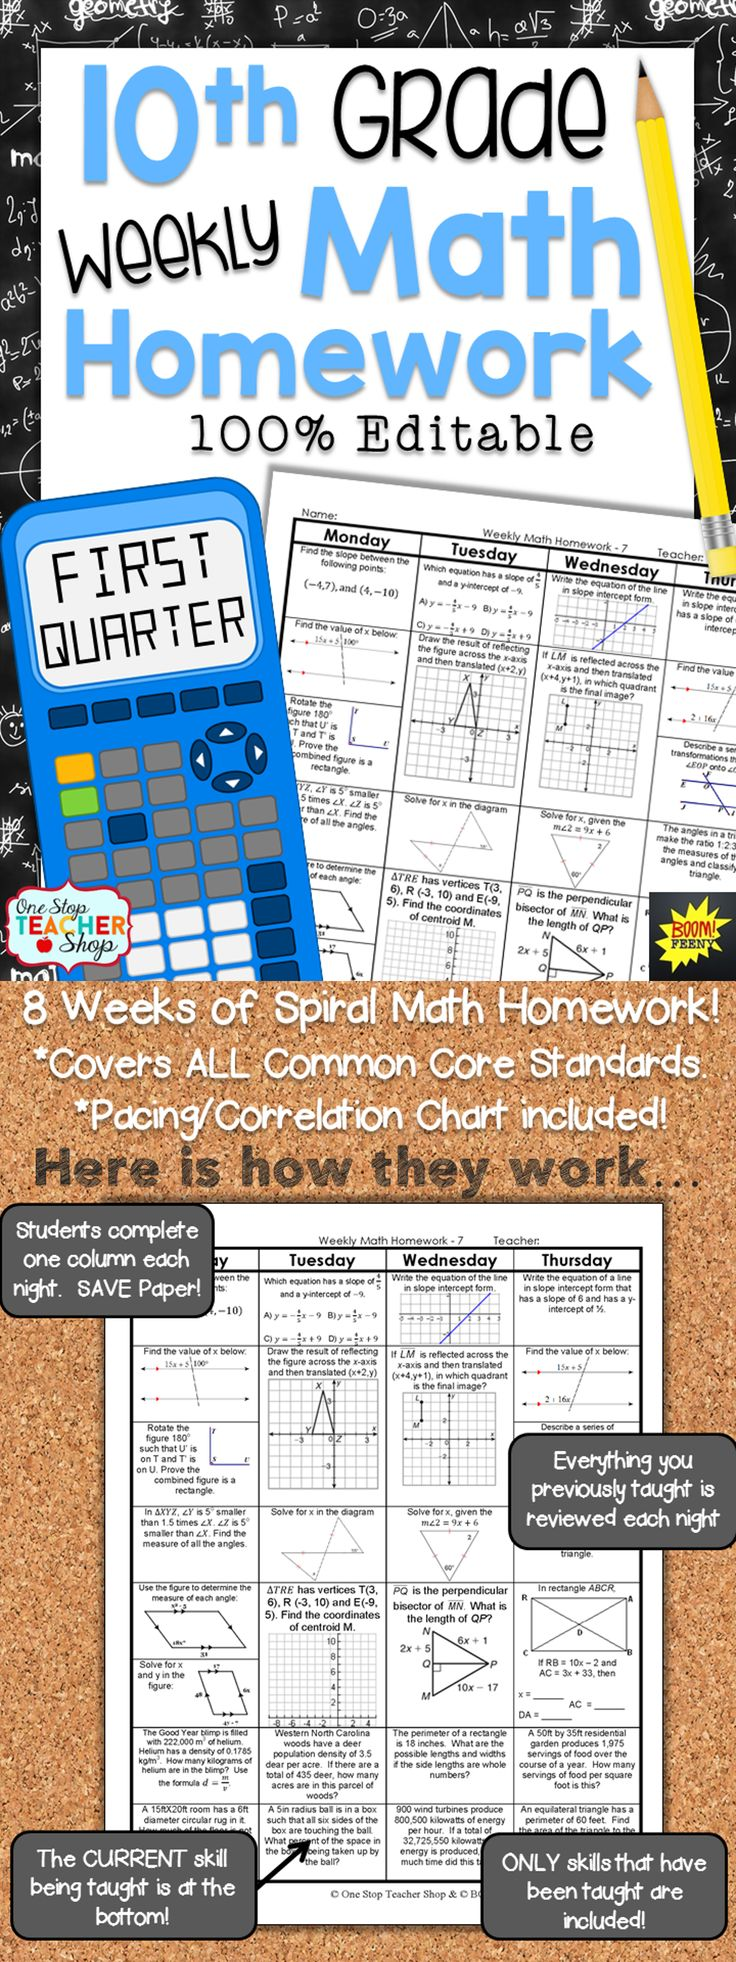 TENTH GRADE Geometry Spiral Math Homework, Warm up, or Math Review for the FIRST QUARTER!! -- 100% EDITABLE -- Aligned with the High School Common Core Geometry Standards. ANSWER KEYS included. Paid